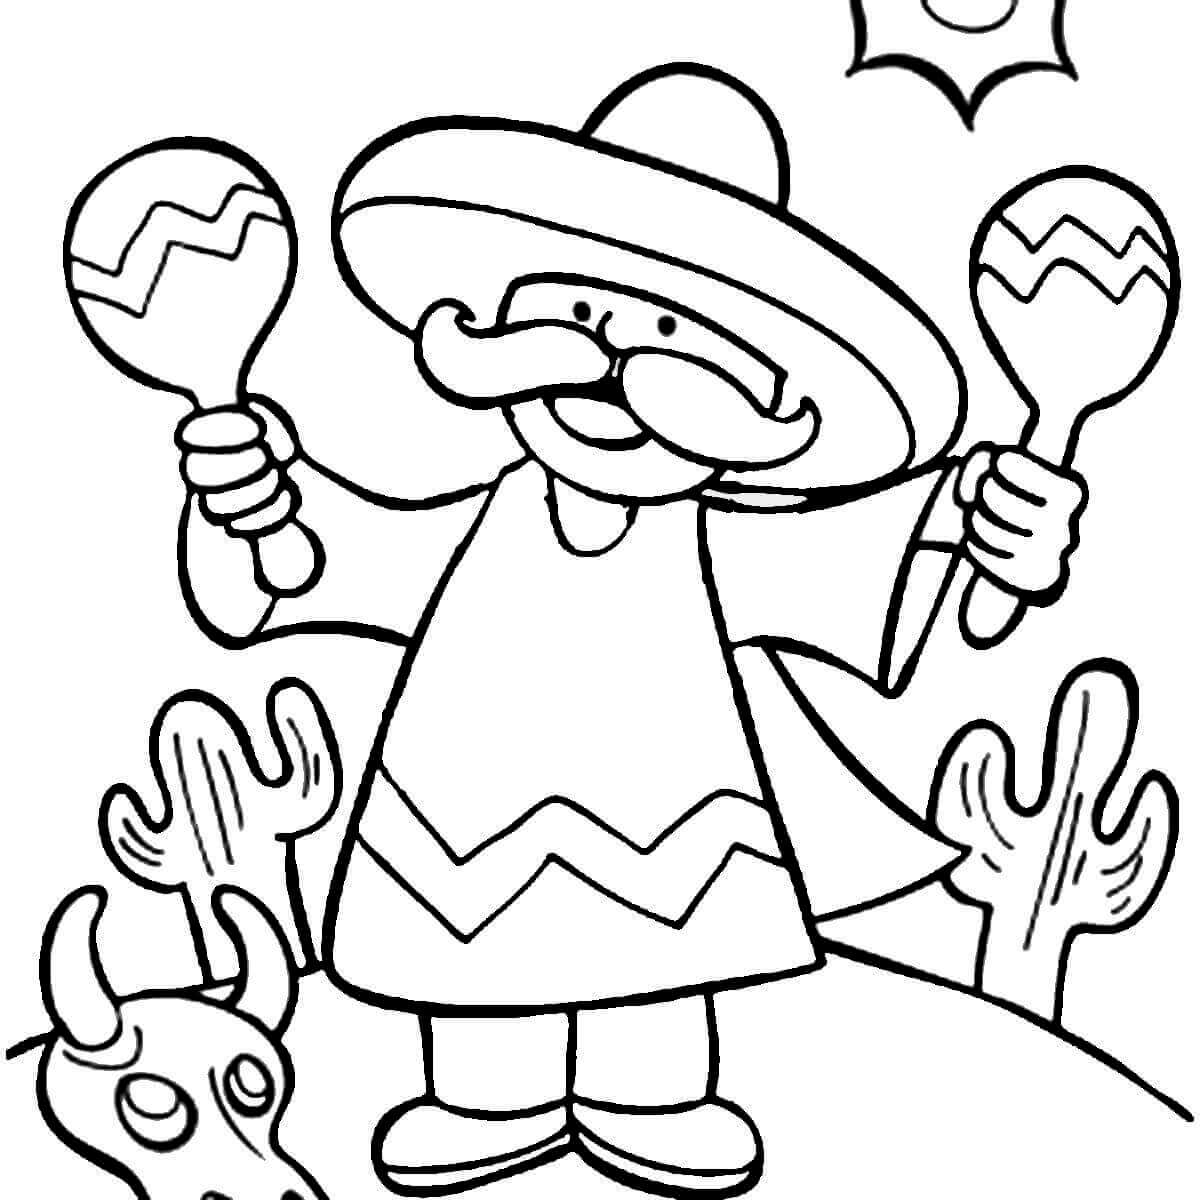 cinco de mayo free coloring pages | 35 Free Printable Cinco de Mayo Coloring Pages